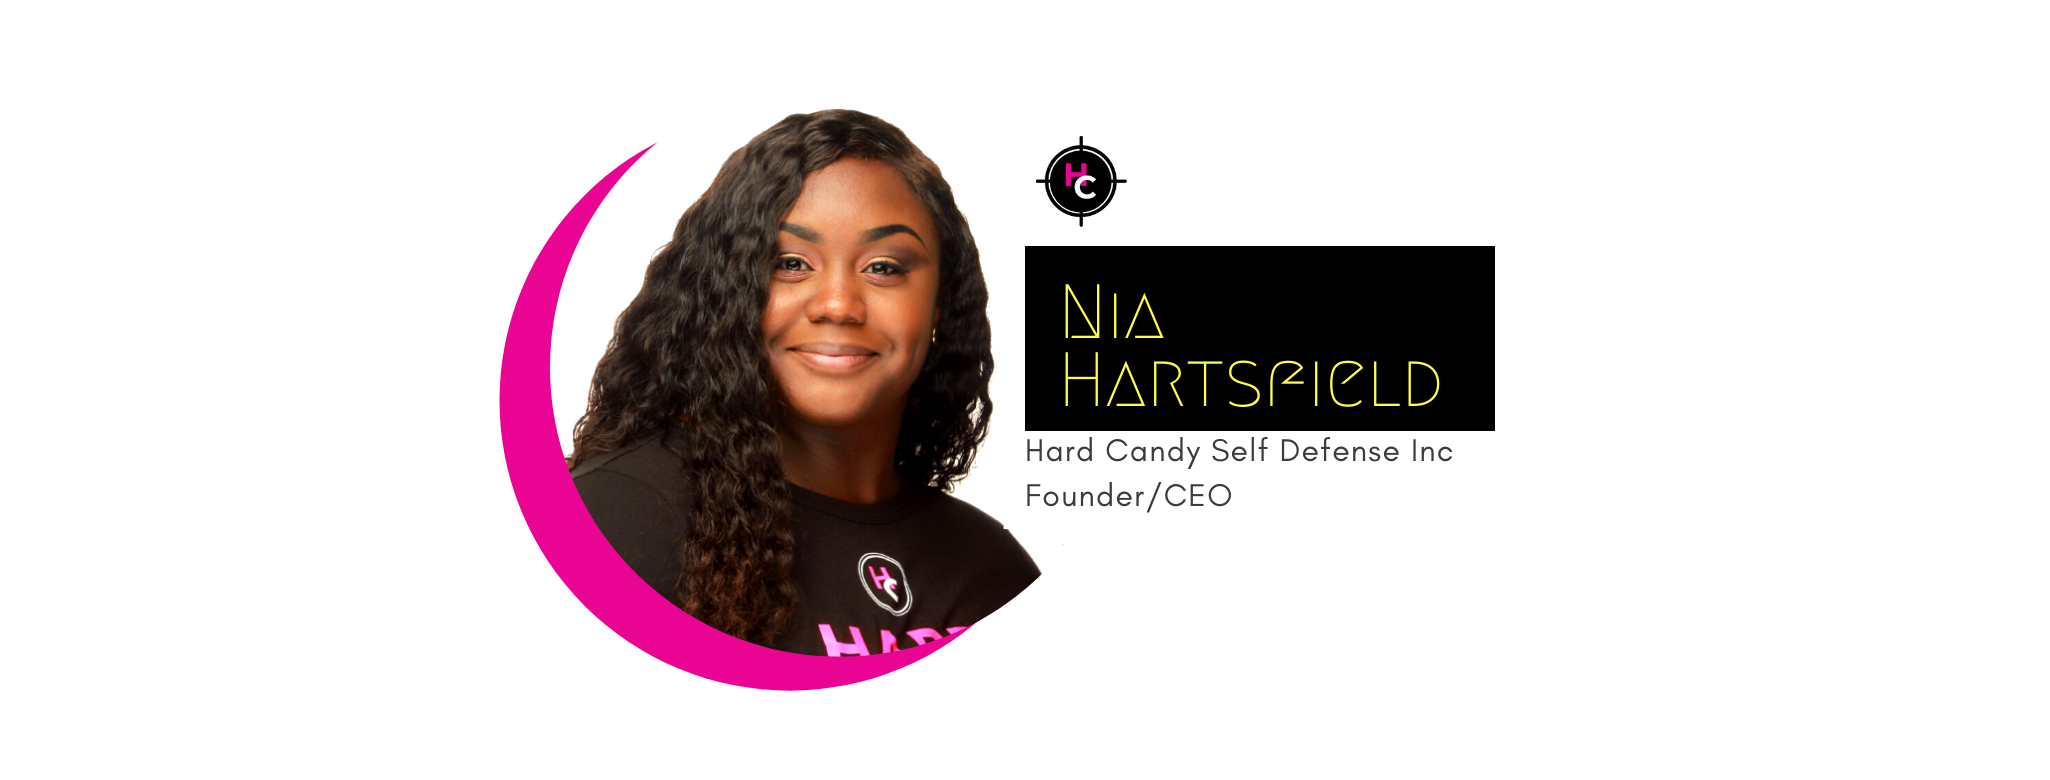 NIA HARTSFIELD HARD CANDY SELF DEFENSE INC. CHARLESTON SOUTH CAROLINA